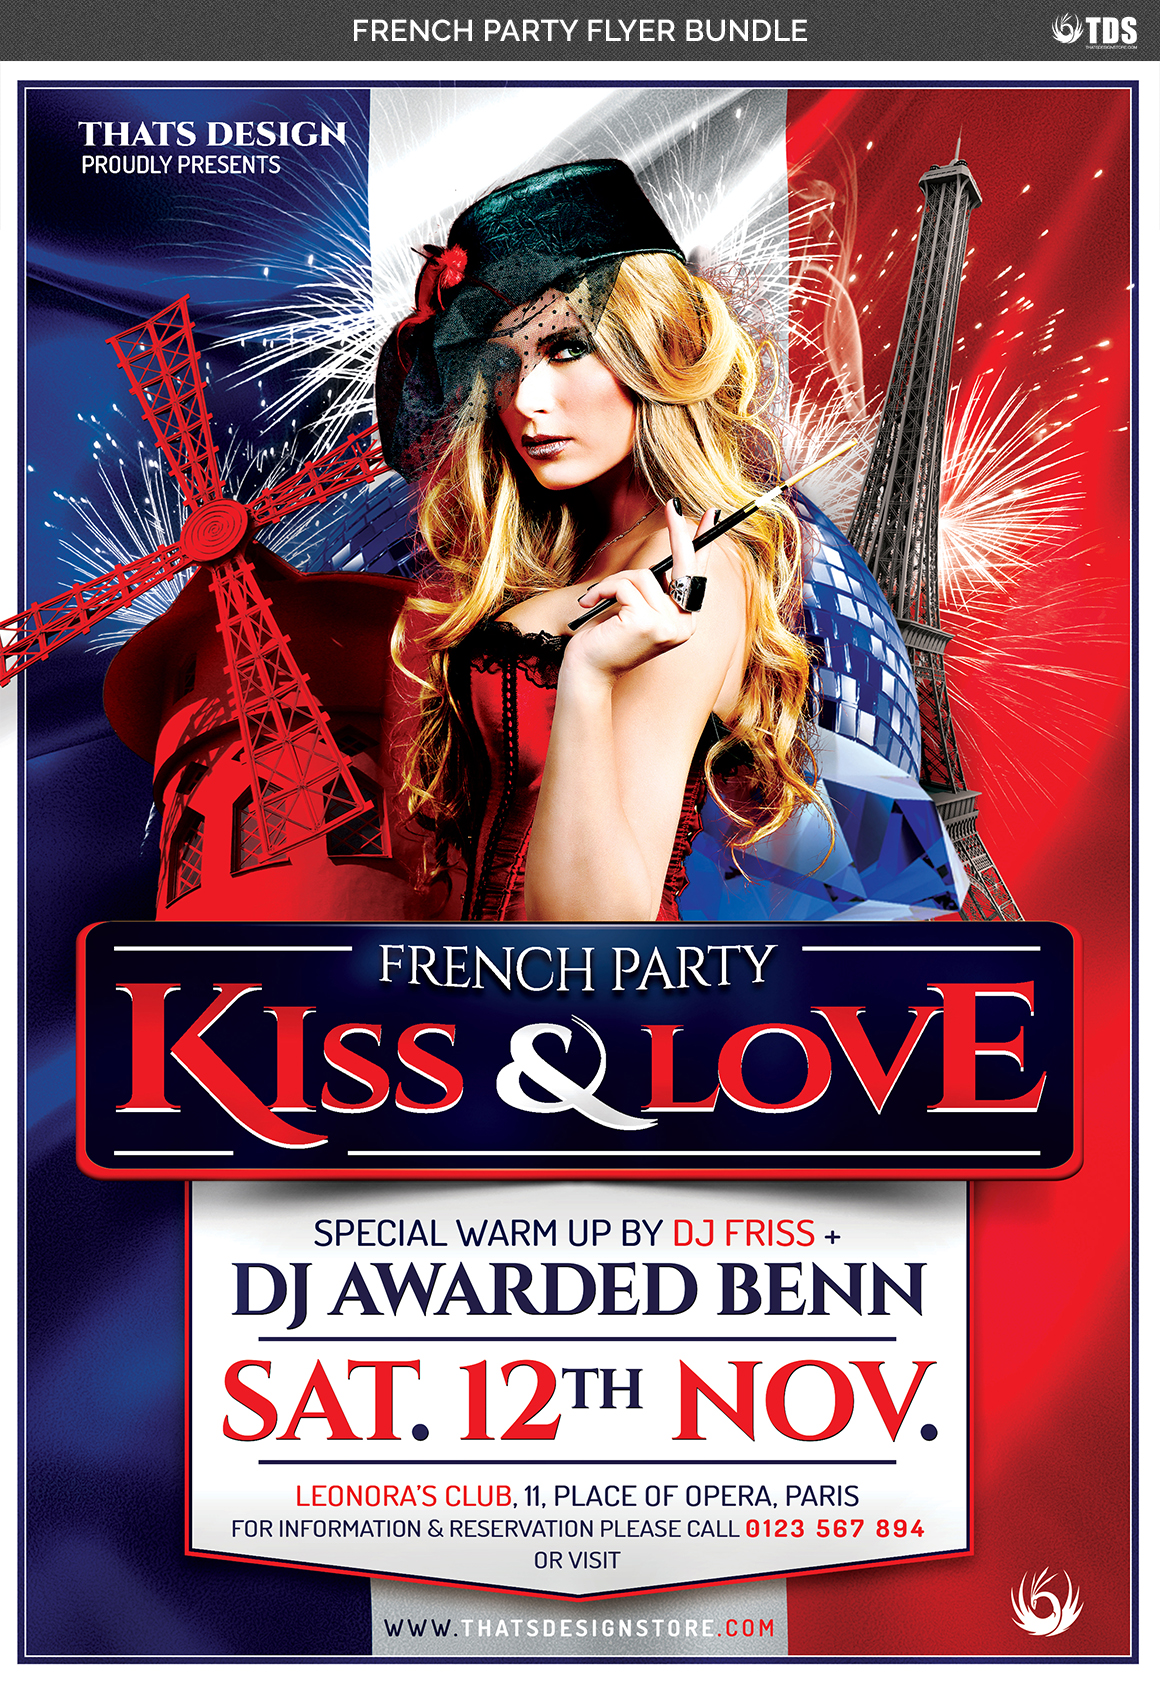 French Party Flyer Bundle example image 7